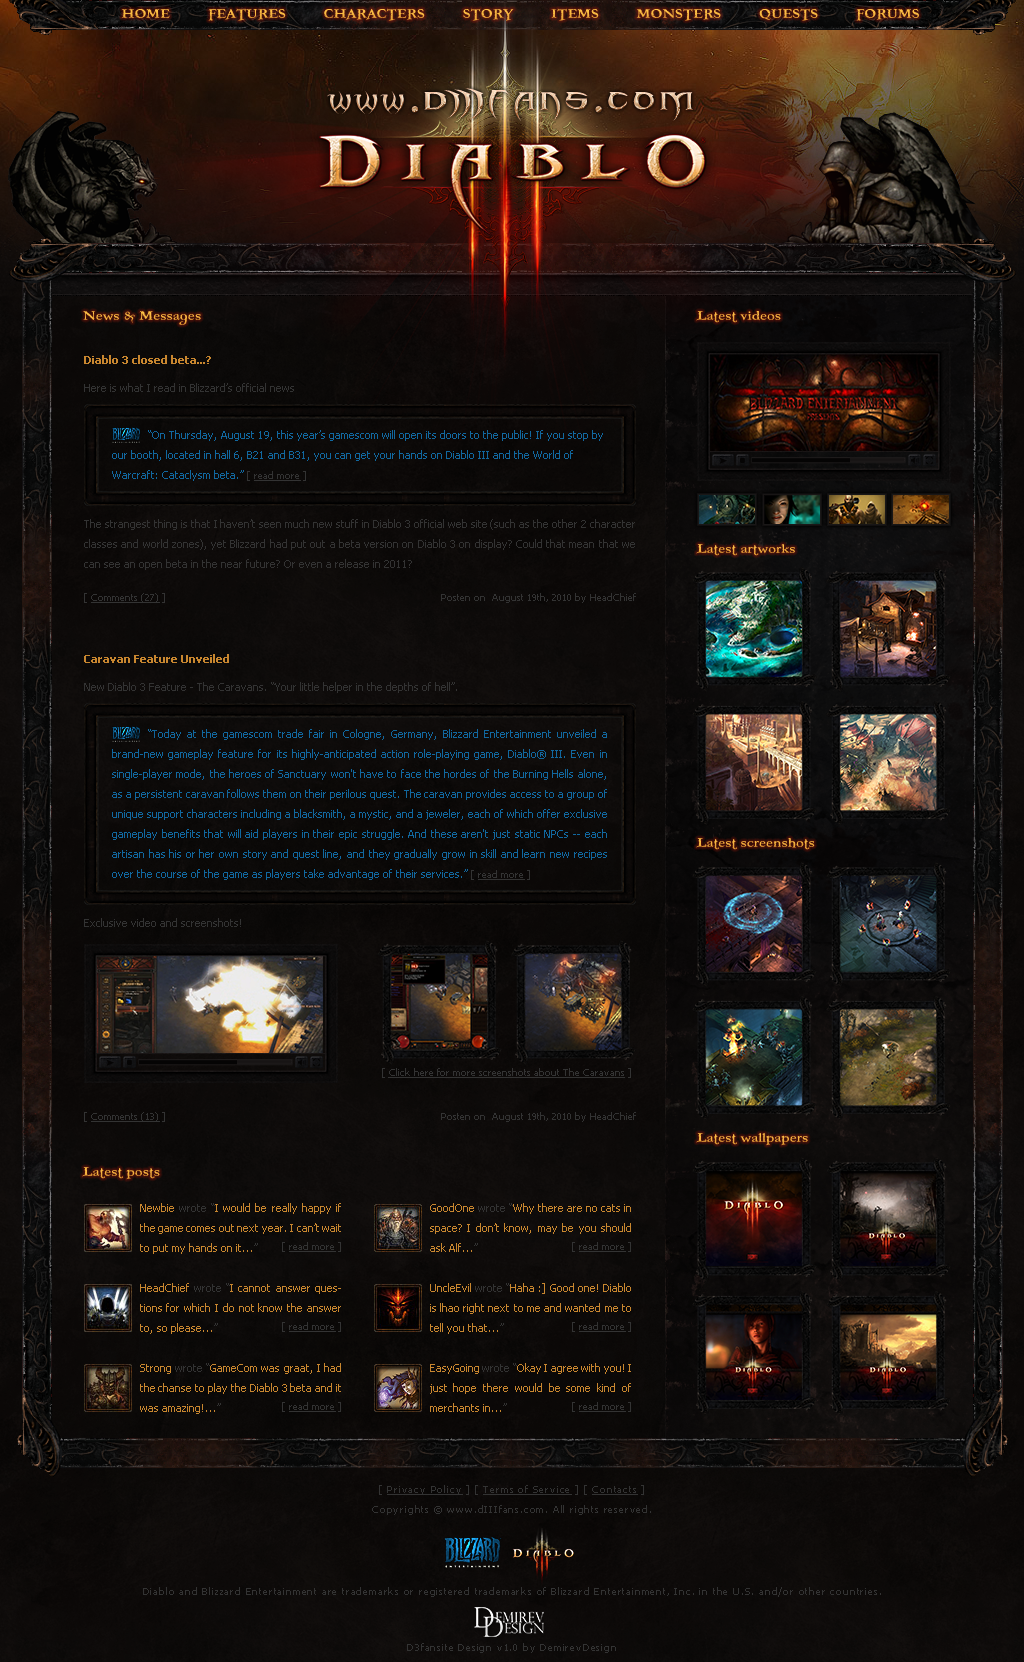 Diablo 3 Fansite Template by NicotineLL on DeviantArt